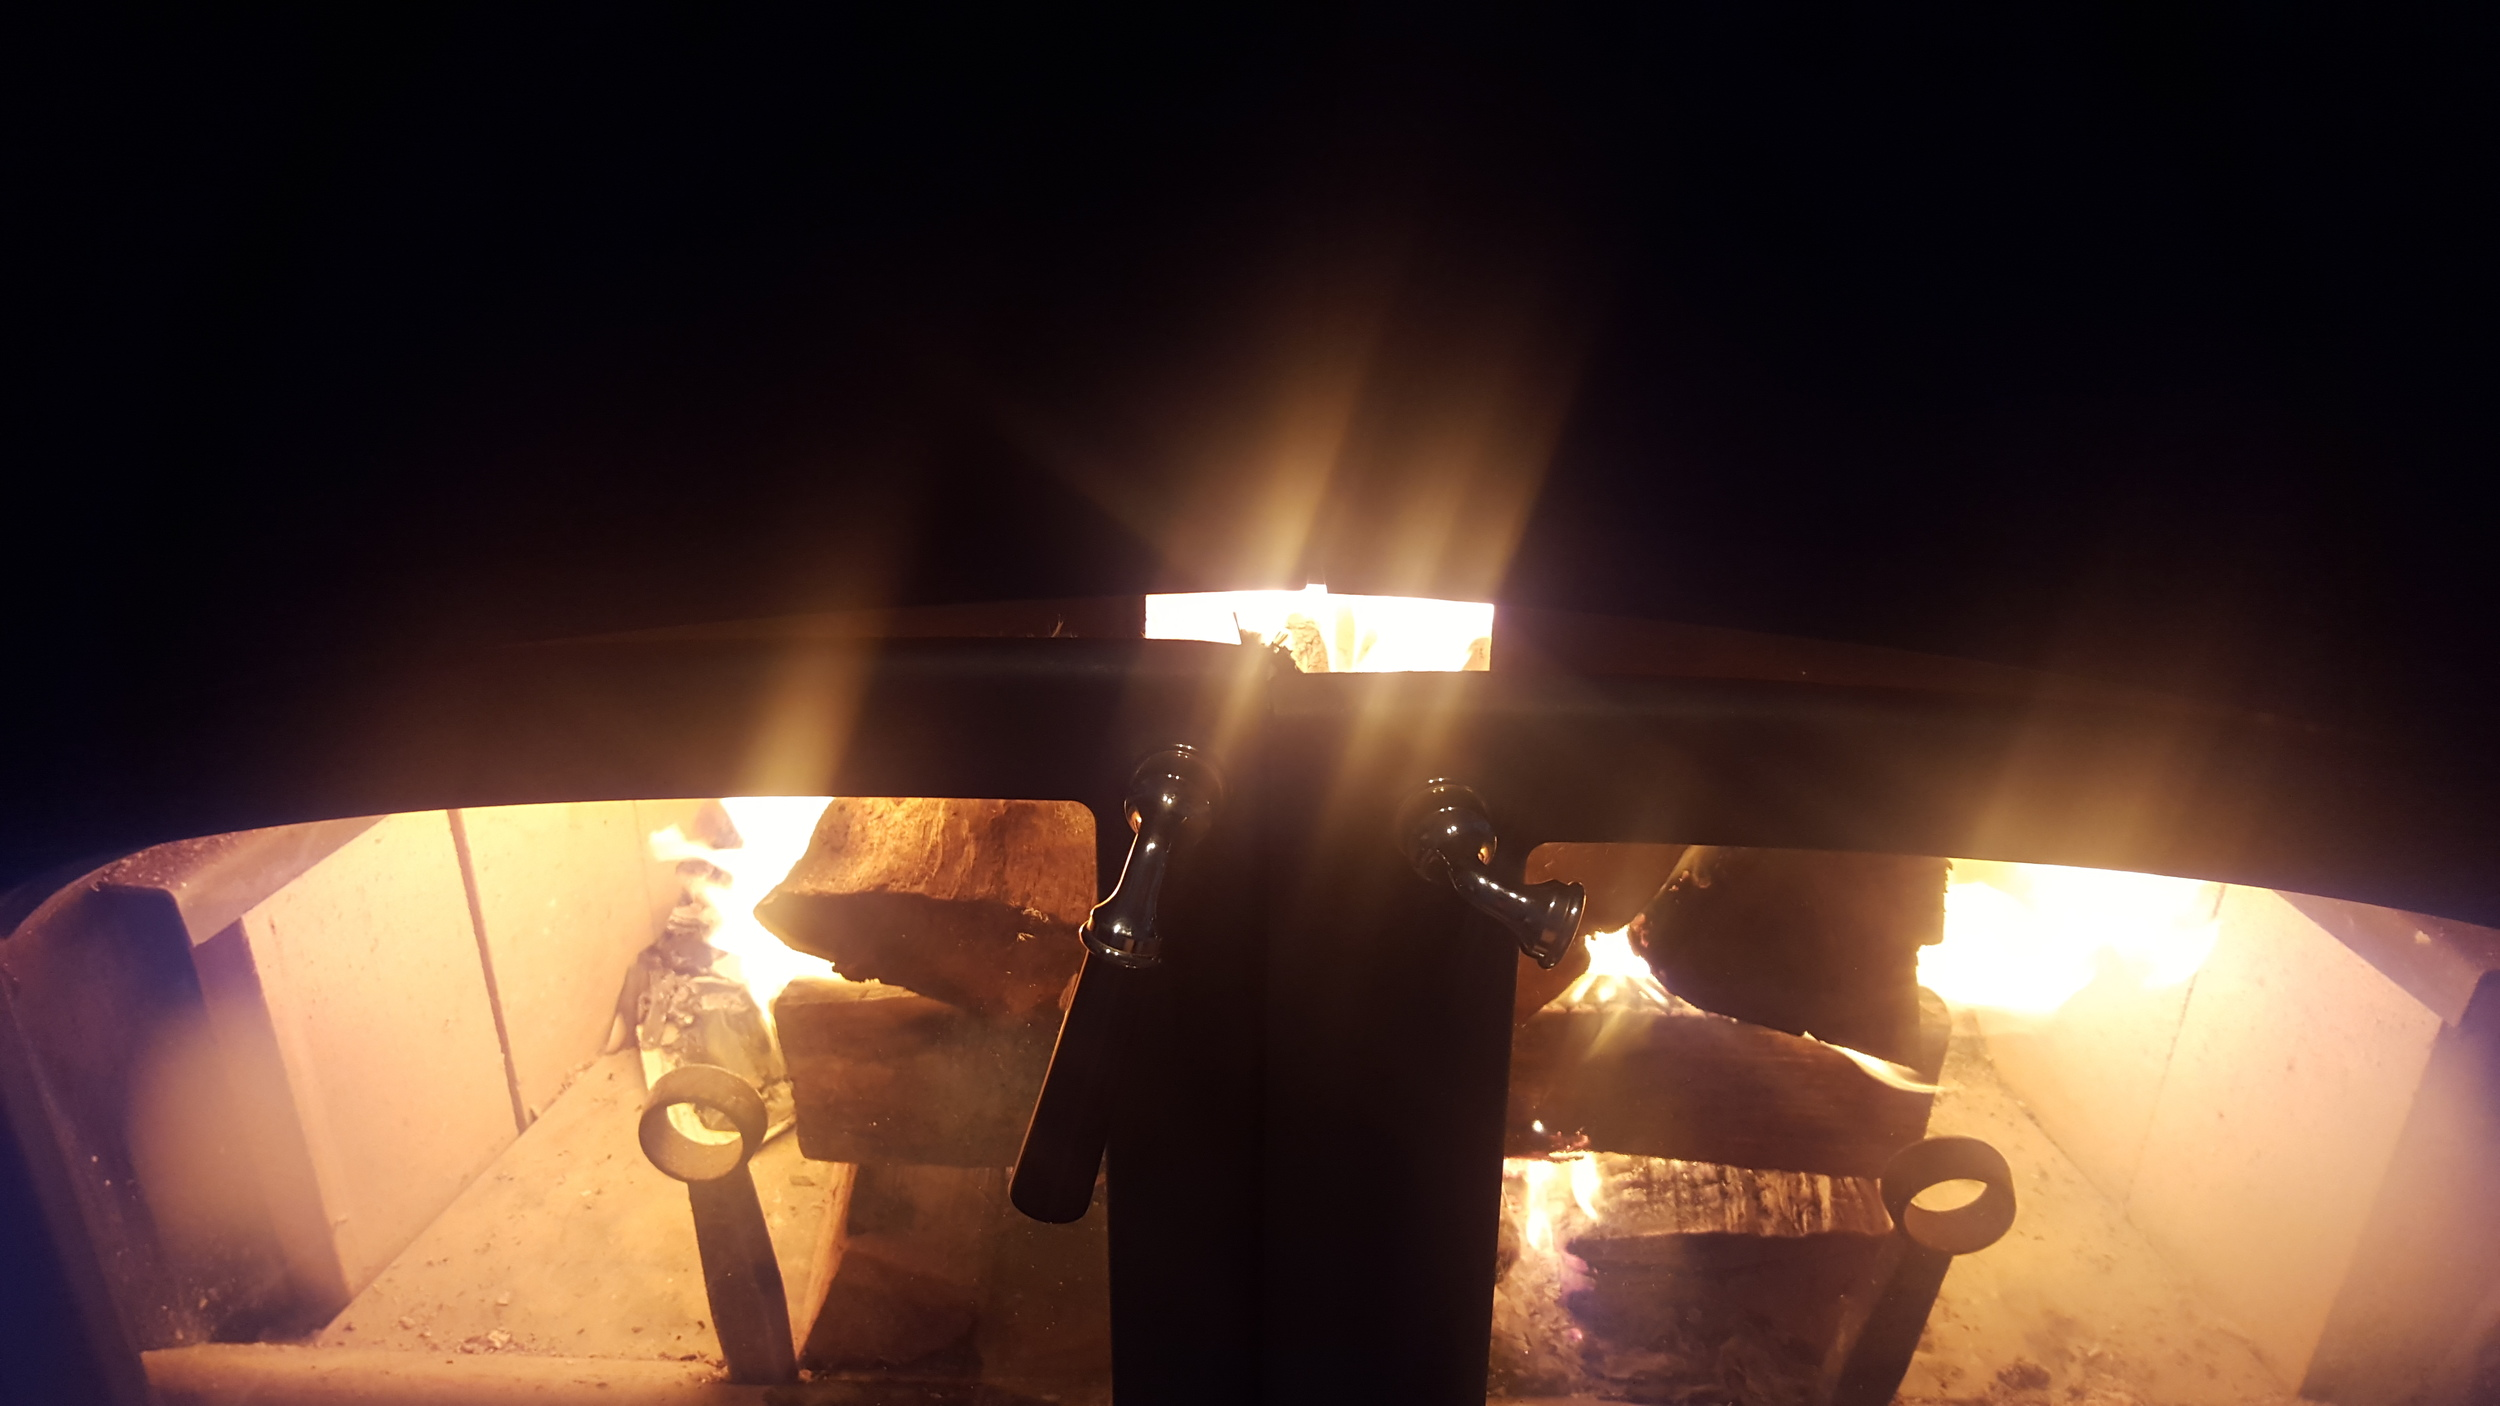 Doors closed partially allowing air to be drawn in by the fire itself accelerating the burn